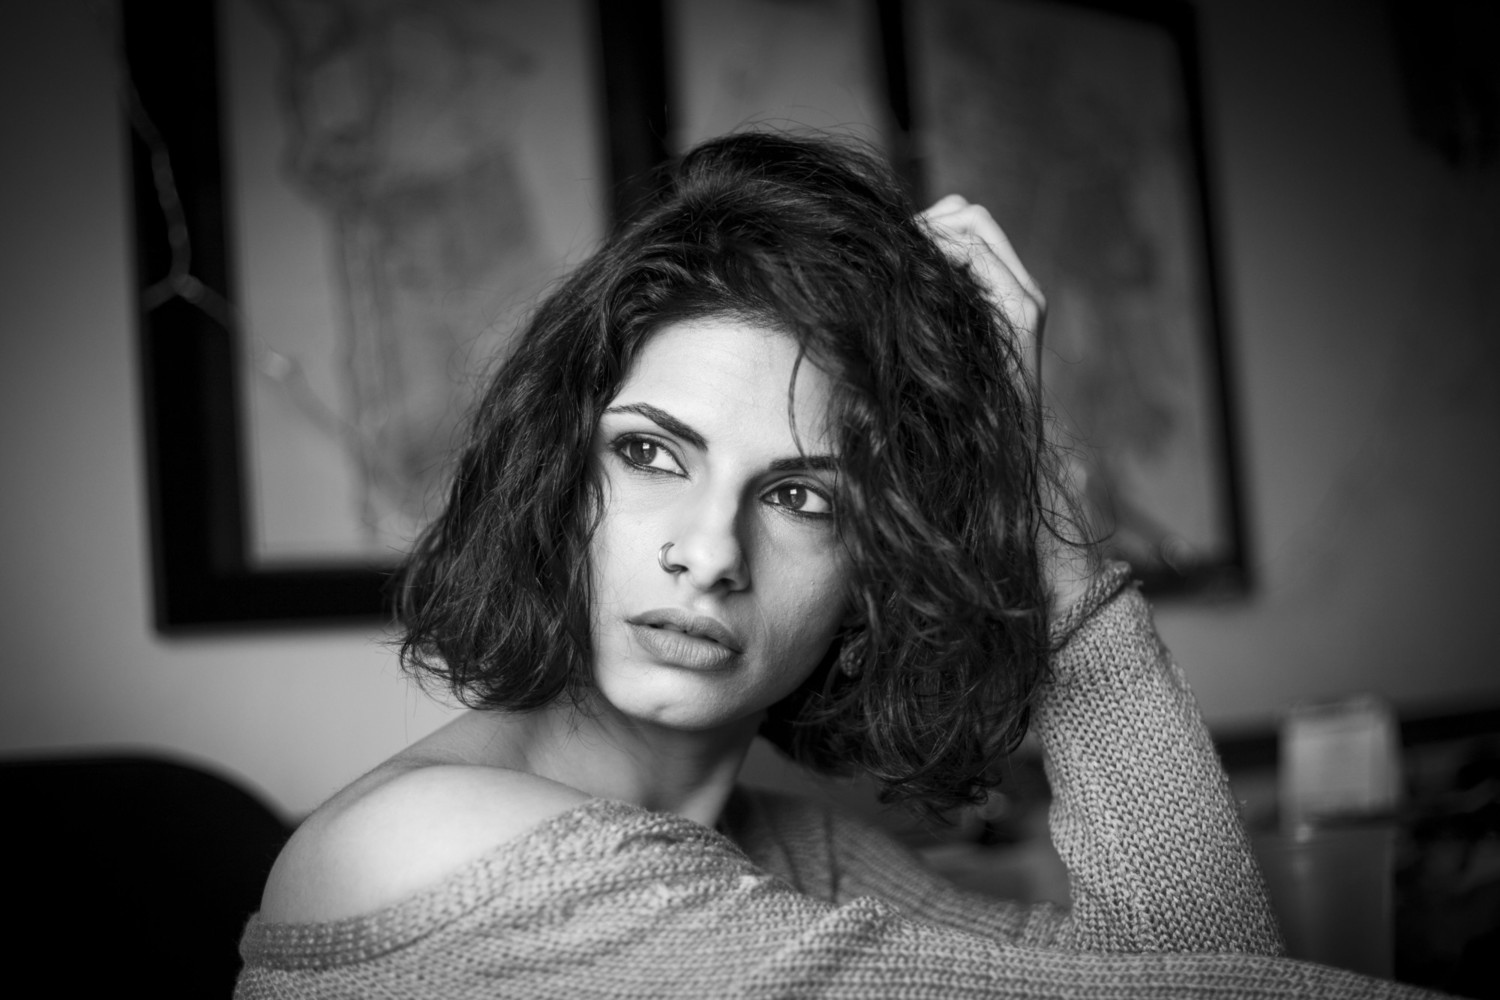 BWW Interview: Shikhandi Fame actor MAHNAZ DAMANIA on why LGBTQ representation is important